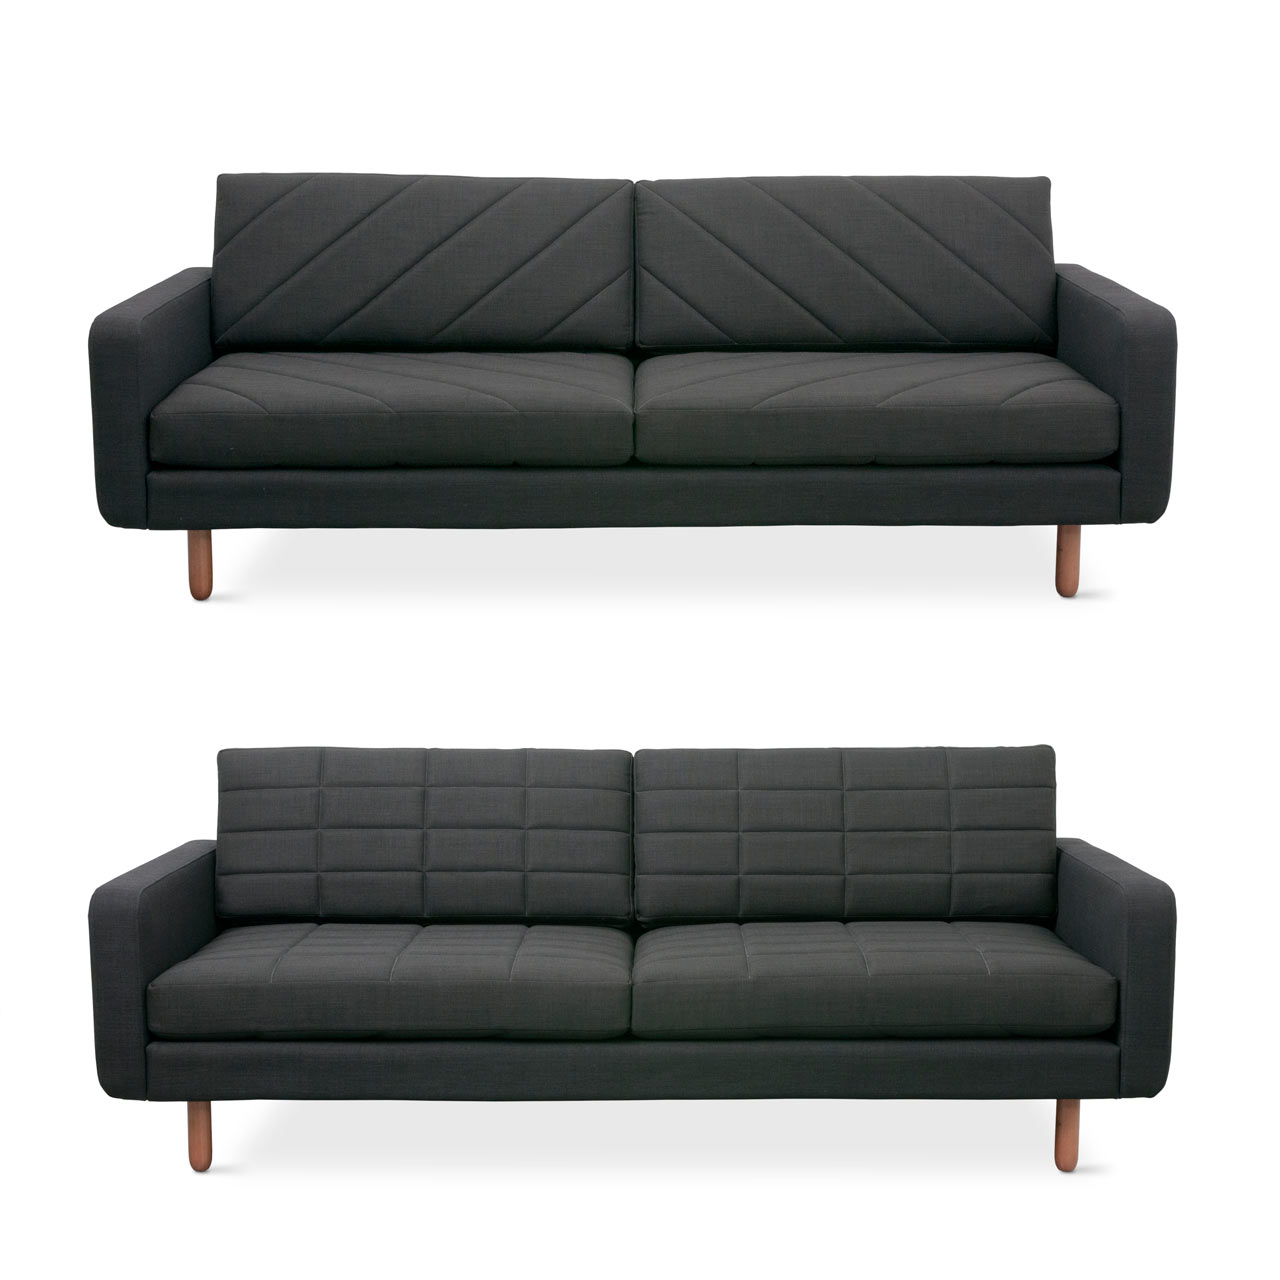 Gus-Modern-3-Switch-Sofa-Laurentian-Onyx